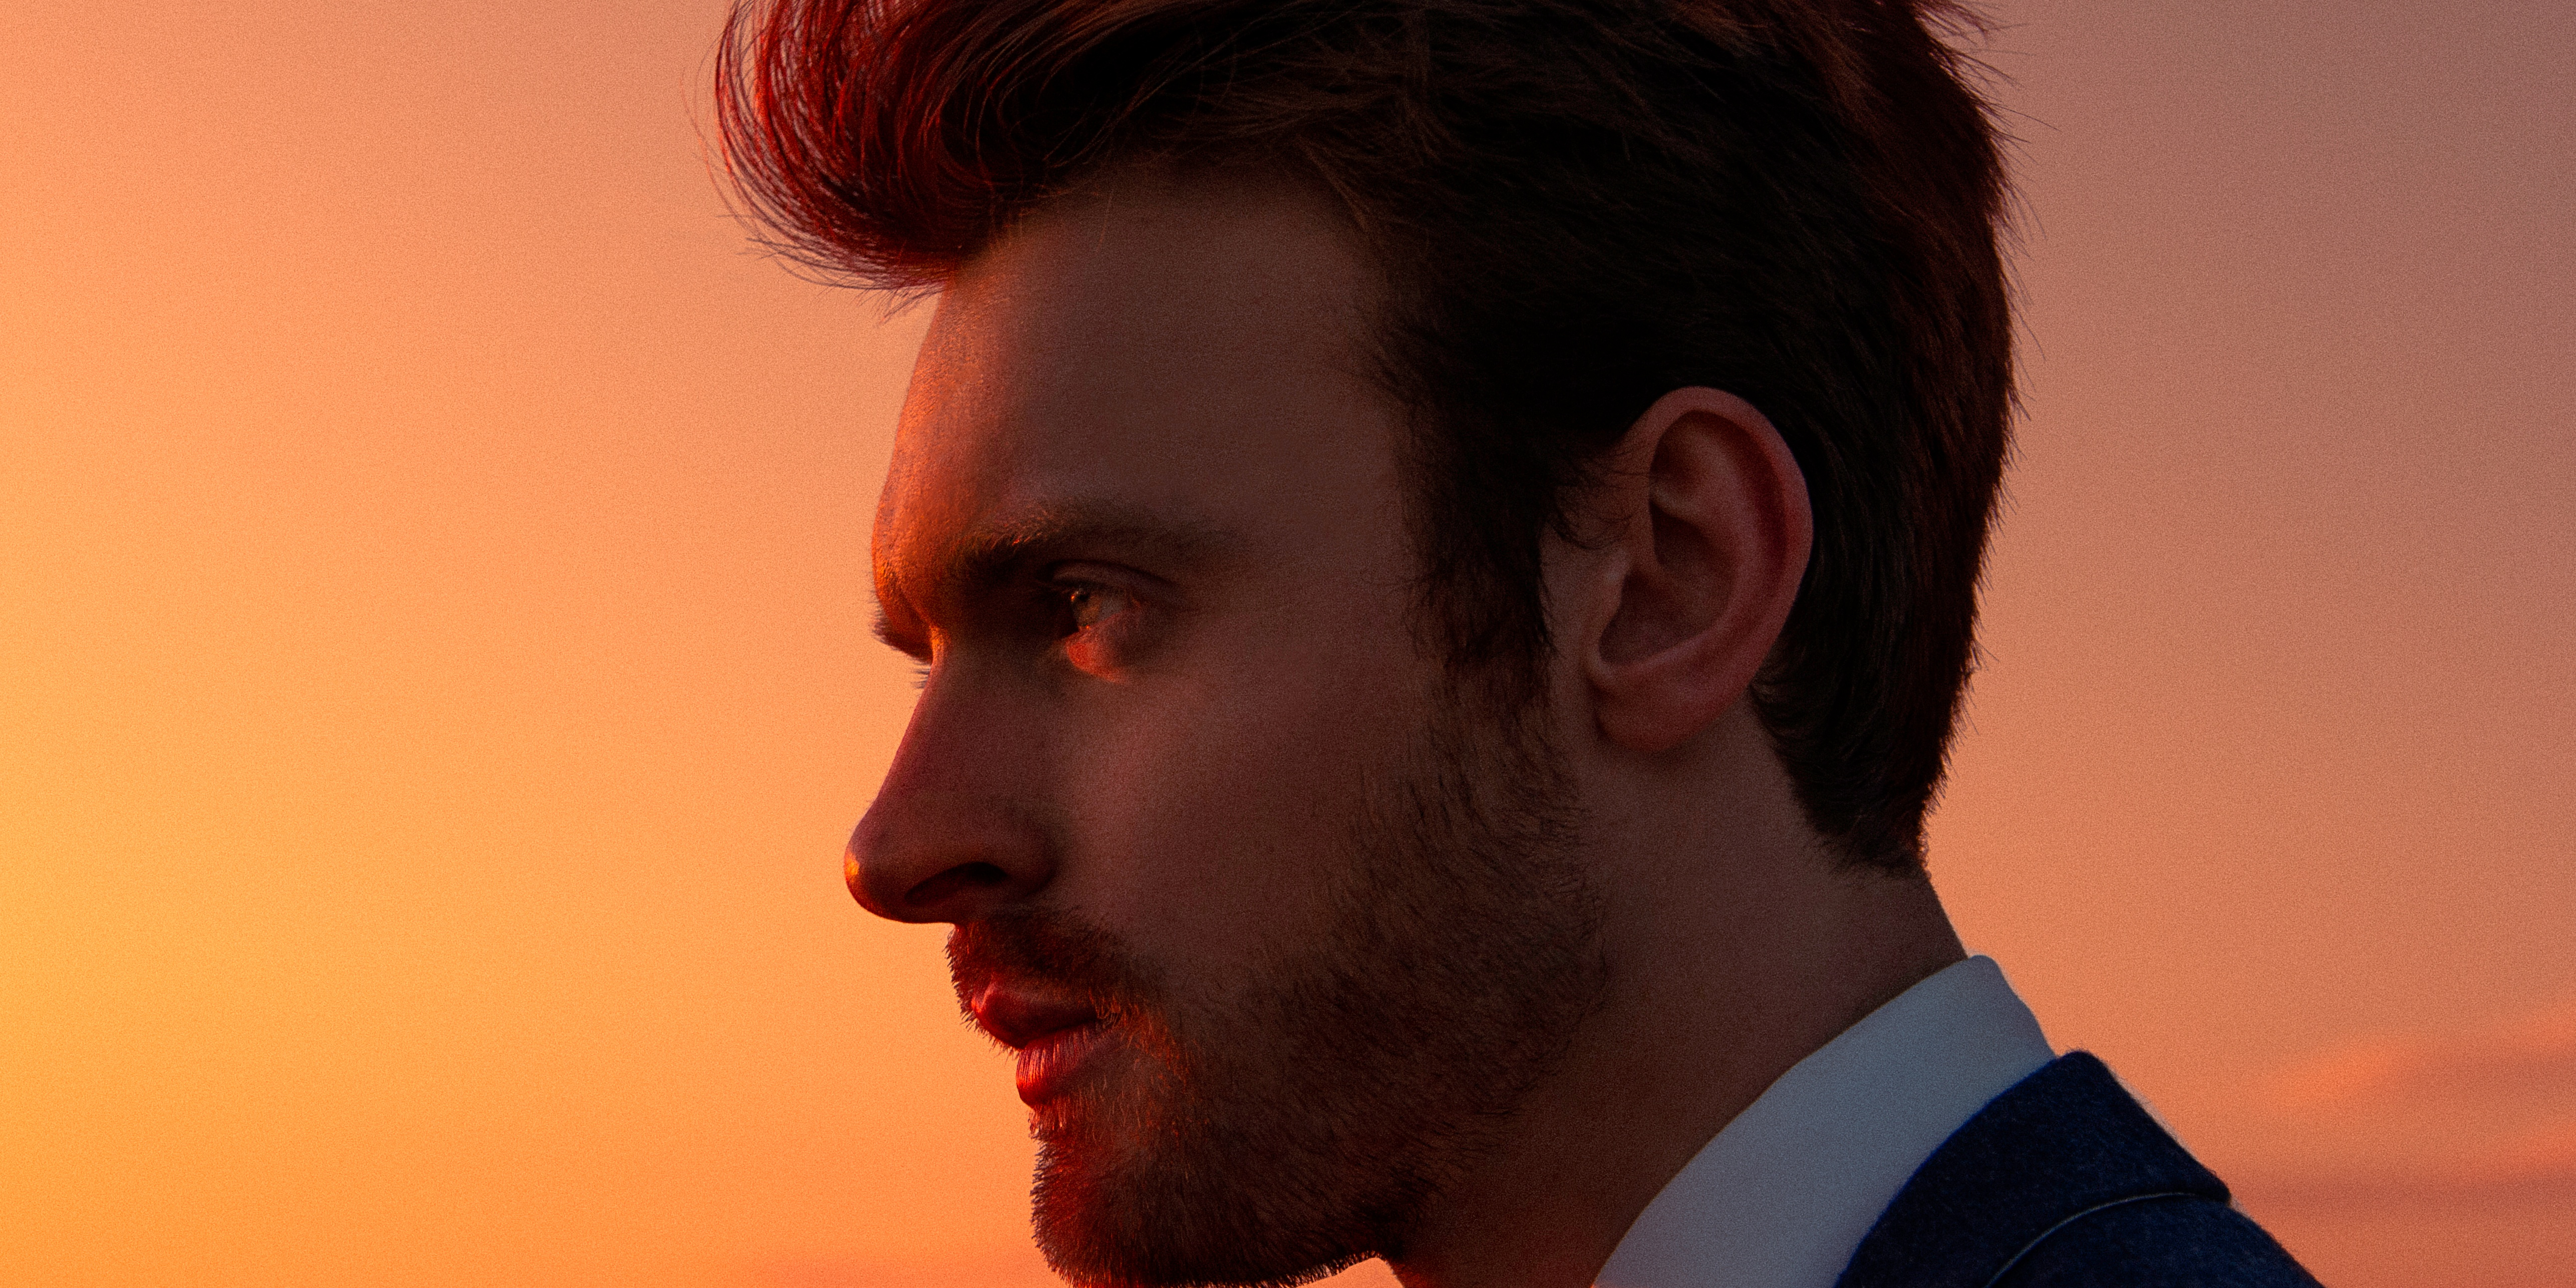 FINNEAS talks about his creative process, living with synesthesia, and life after winning a GRAMMY